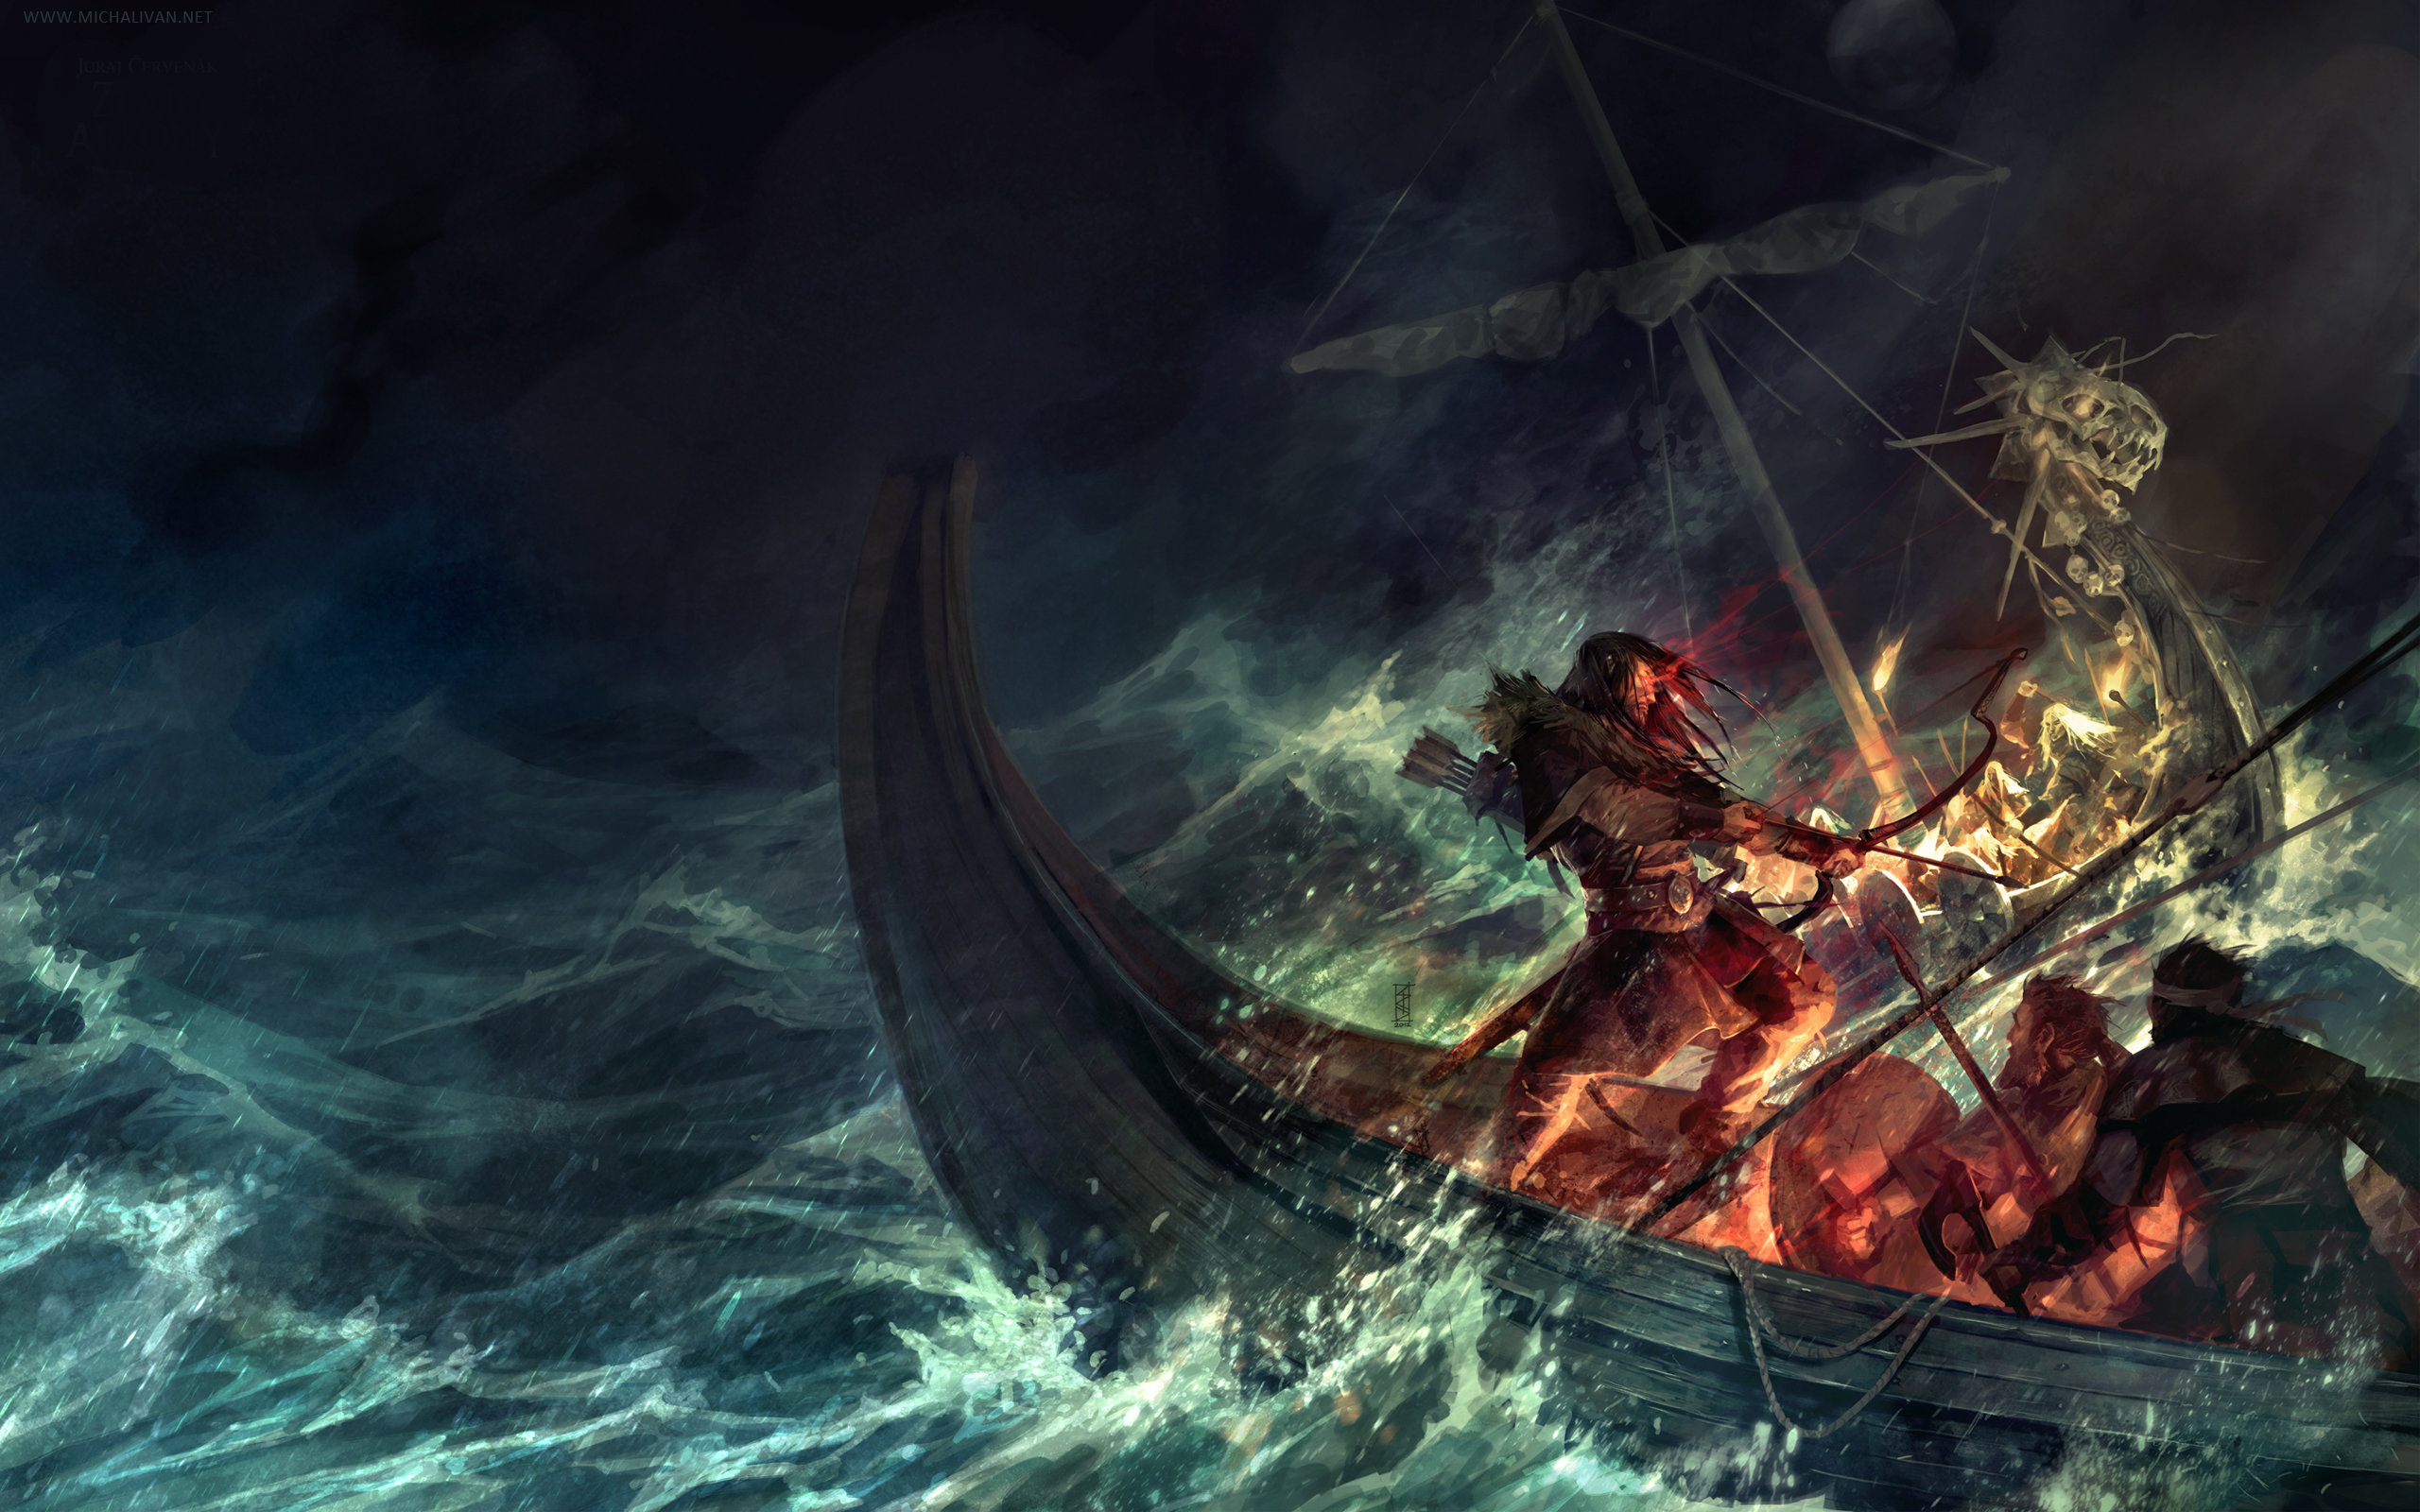 Free download Viking background ID:387469 hd 2560x1600 for computer